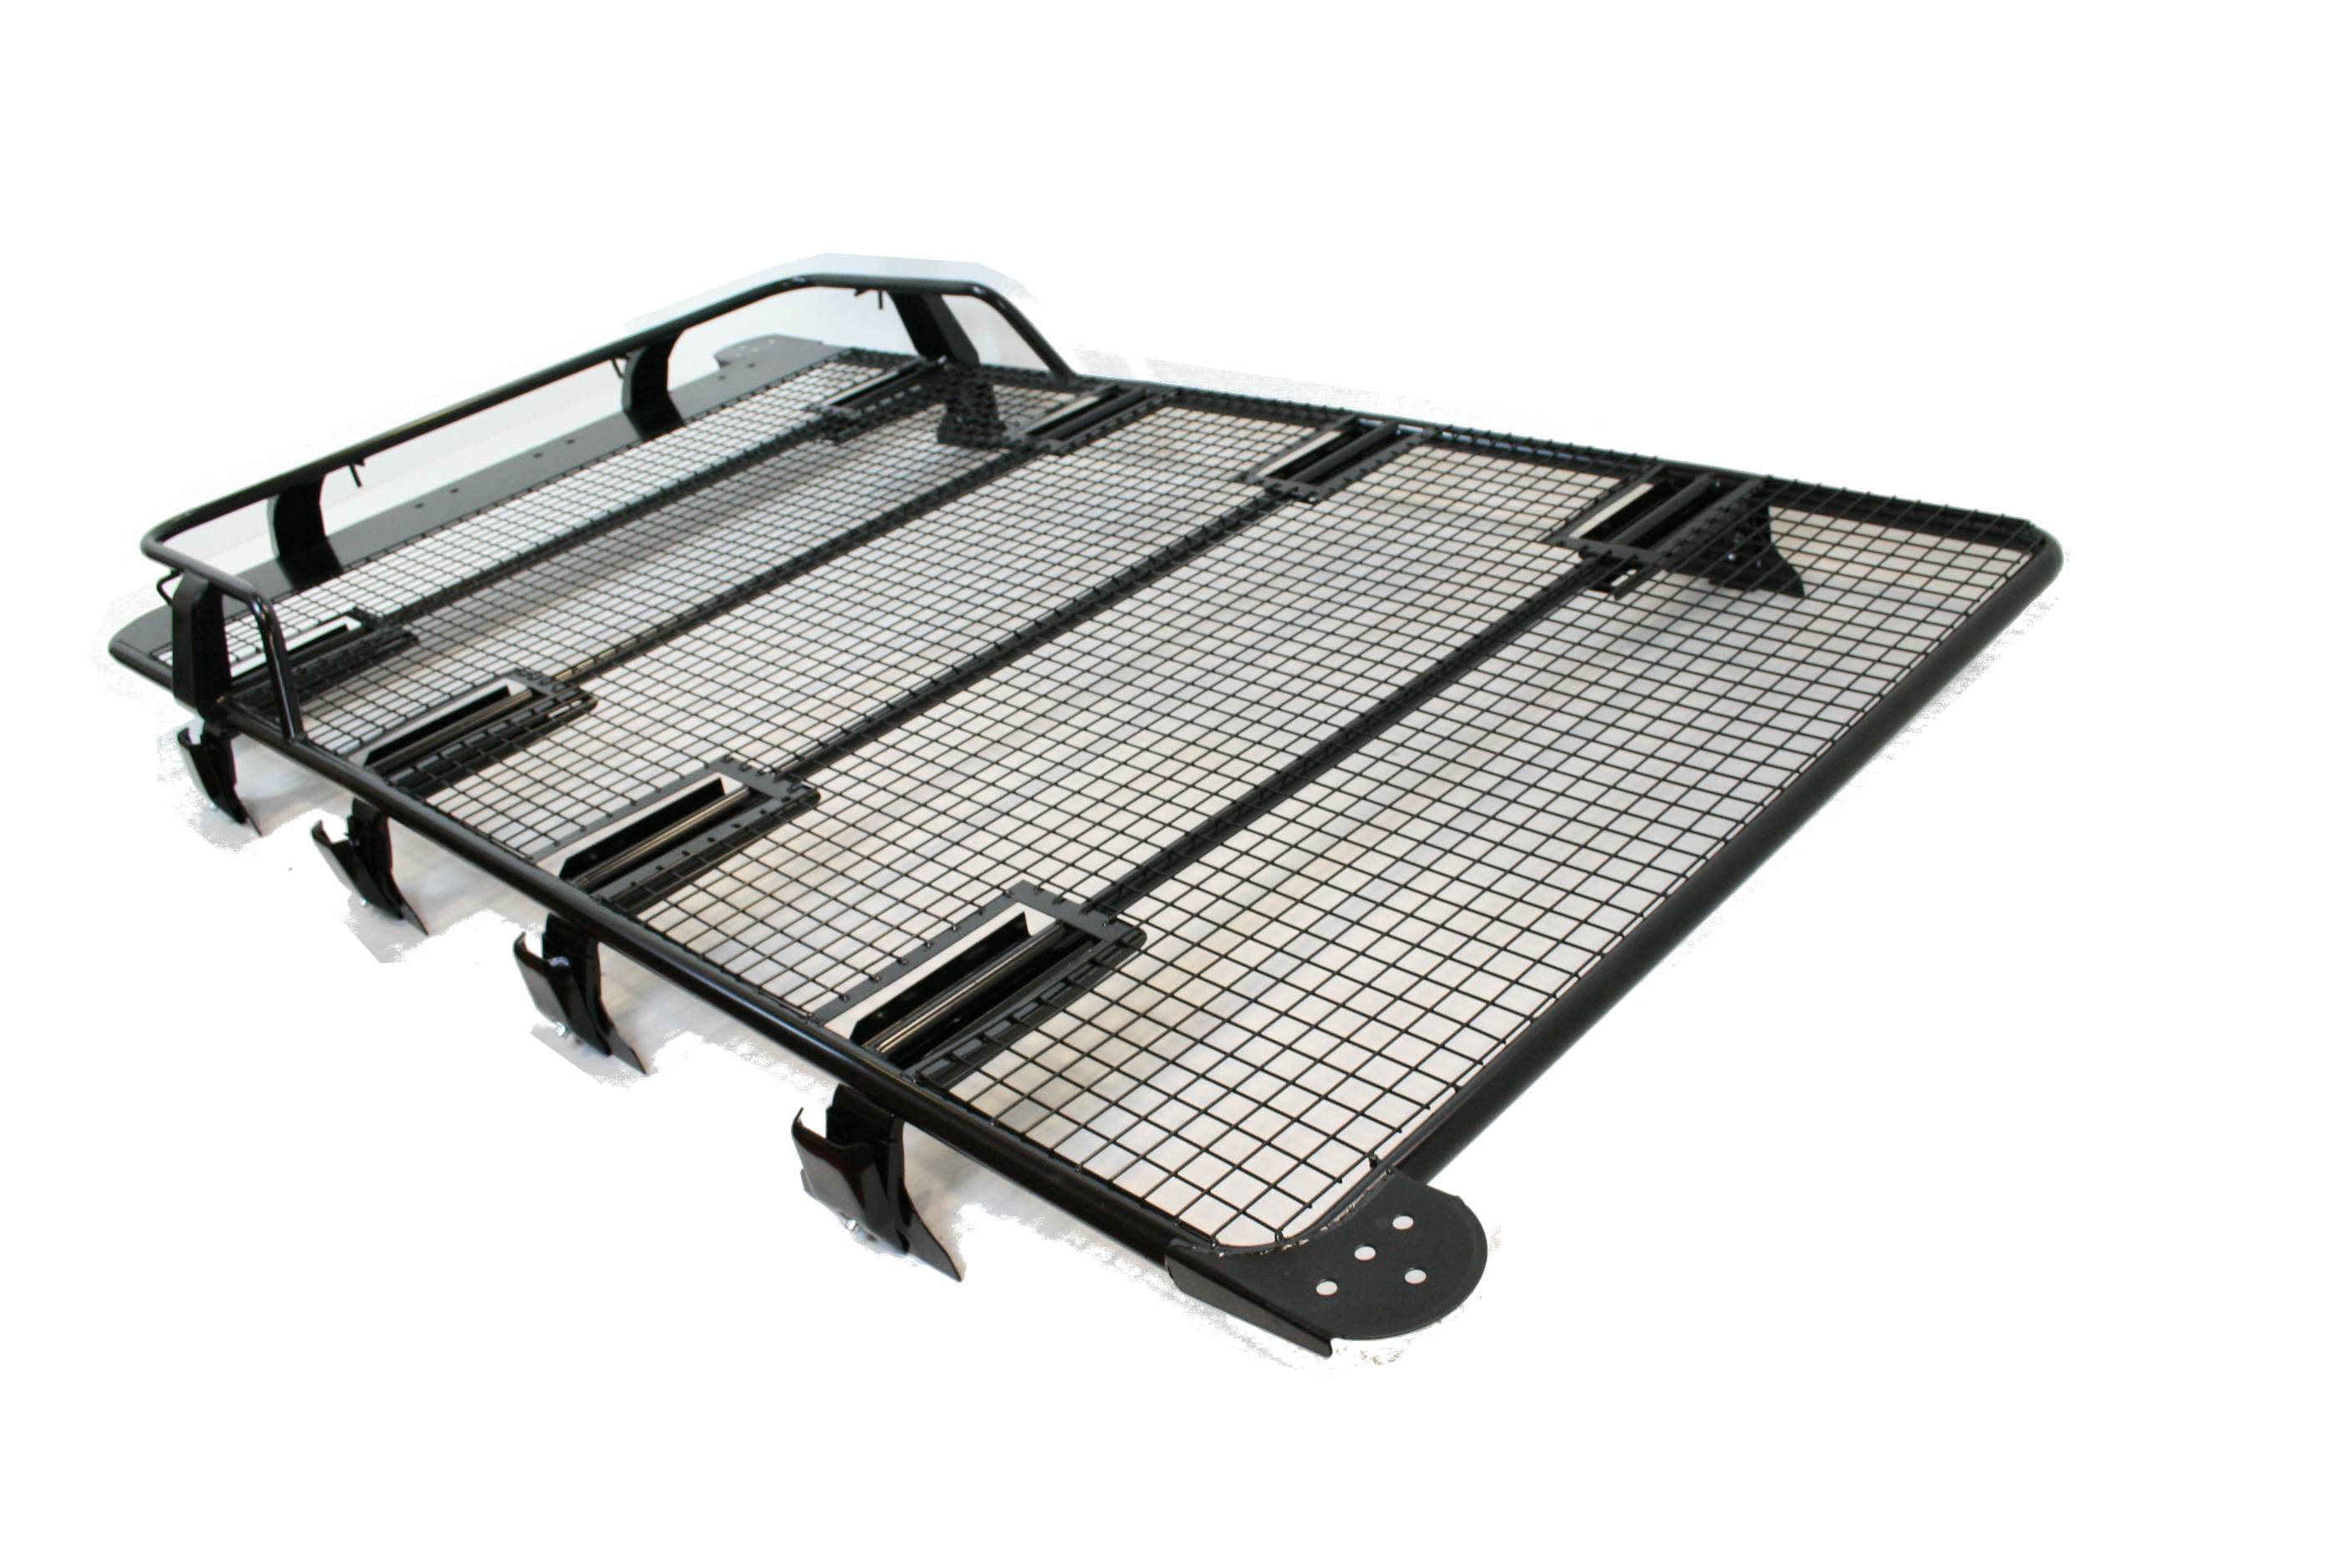 OneItemInfo together with Proline Hr095 Ball Mount Bike Rack as well Thule Sonic Xl Q5 2902419 also E7210FJ400 moreover Rhino Rack Sunseeker Vehicle Awning. on vehicle roof cargo rack